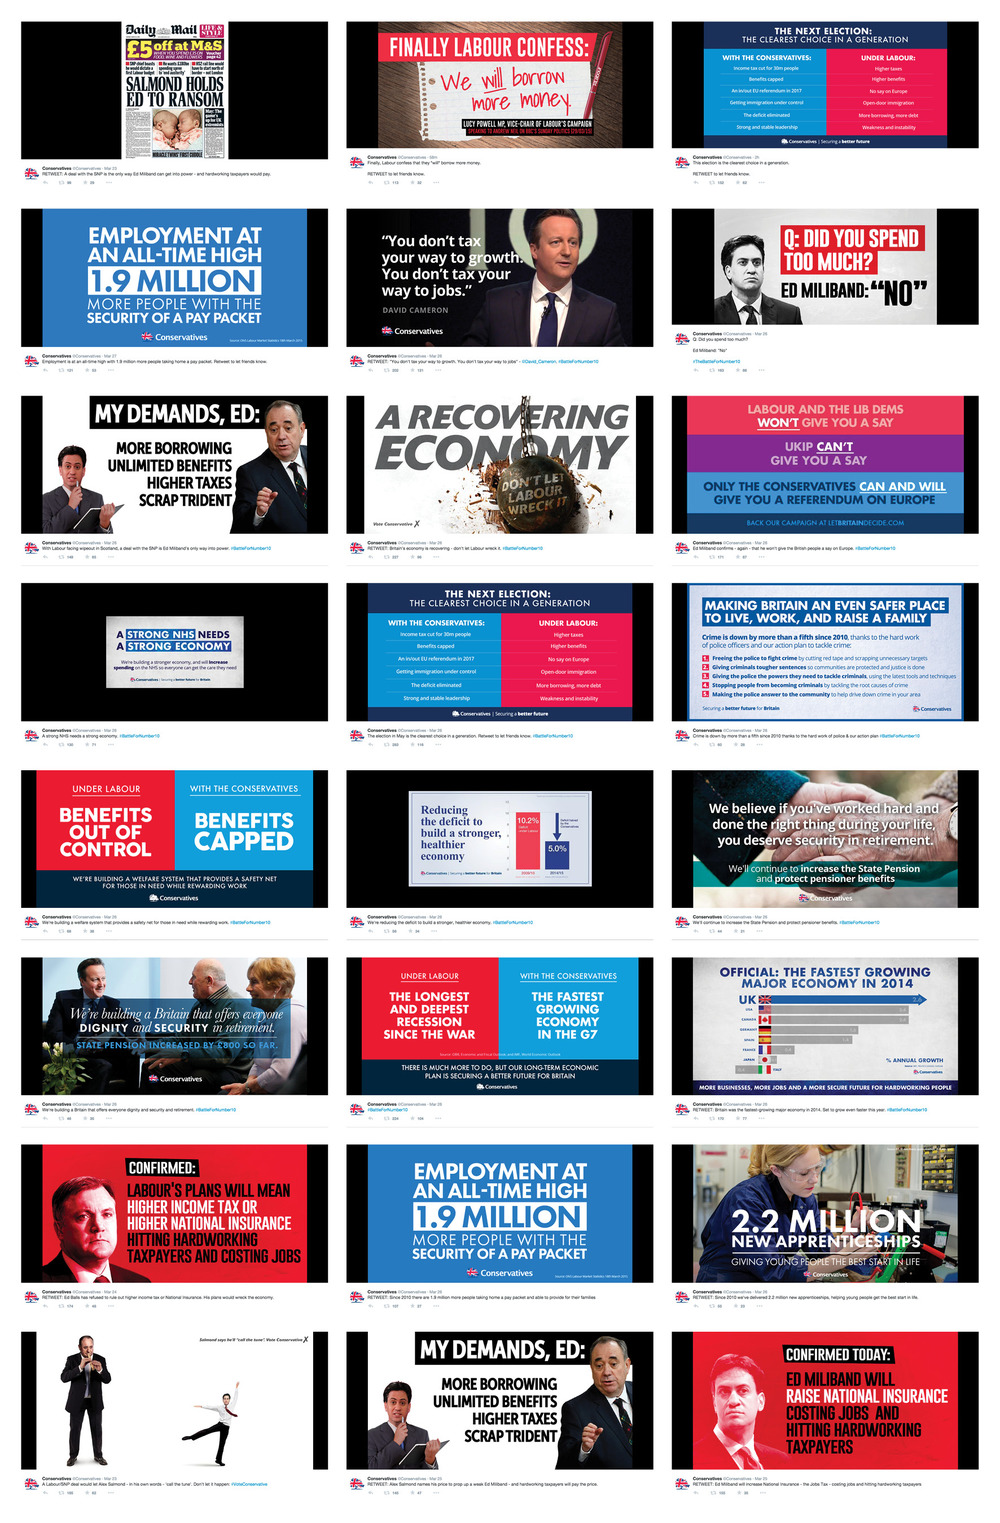 Images from @Conservatives / 23 March - 29 March